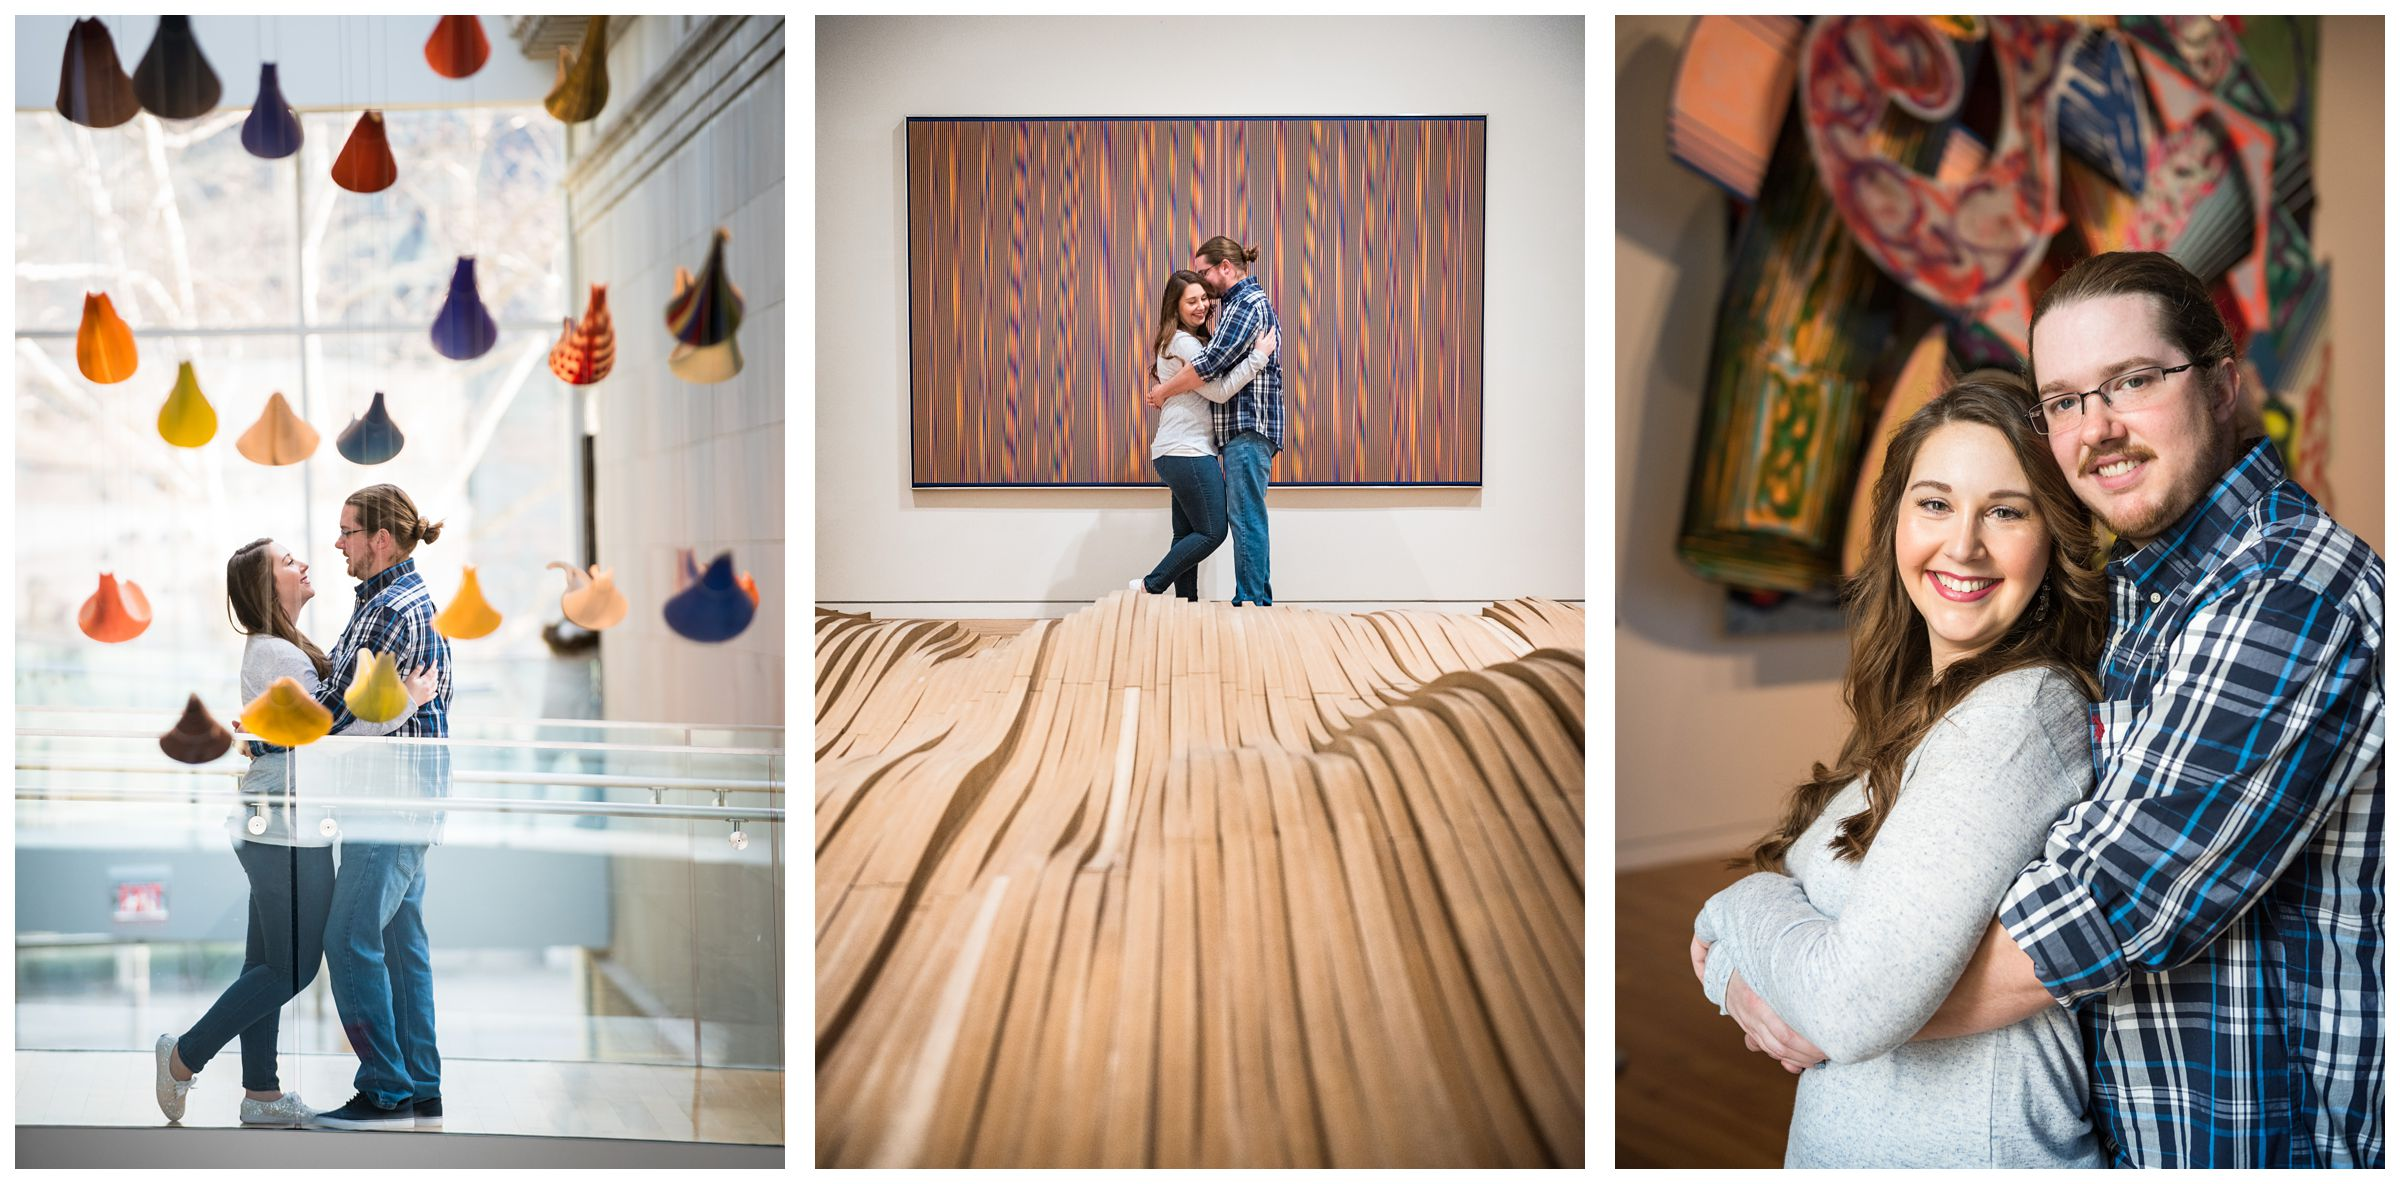 Couple standing near colorful artwork during an indoor winter engagement session at the Columbus Museum of Art